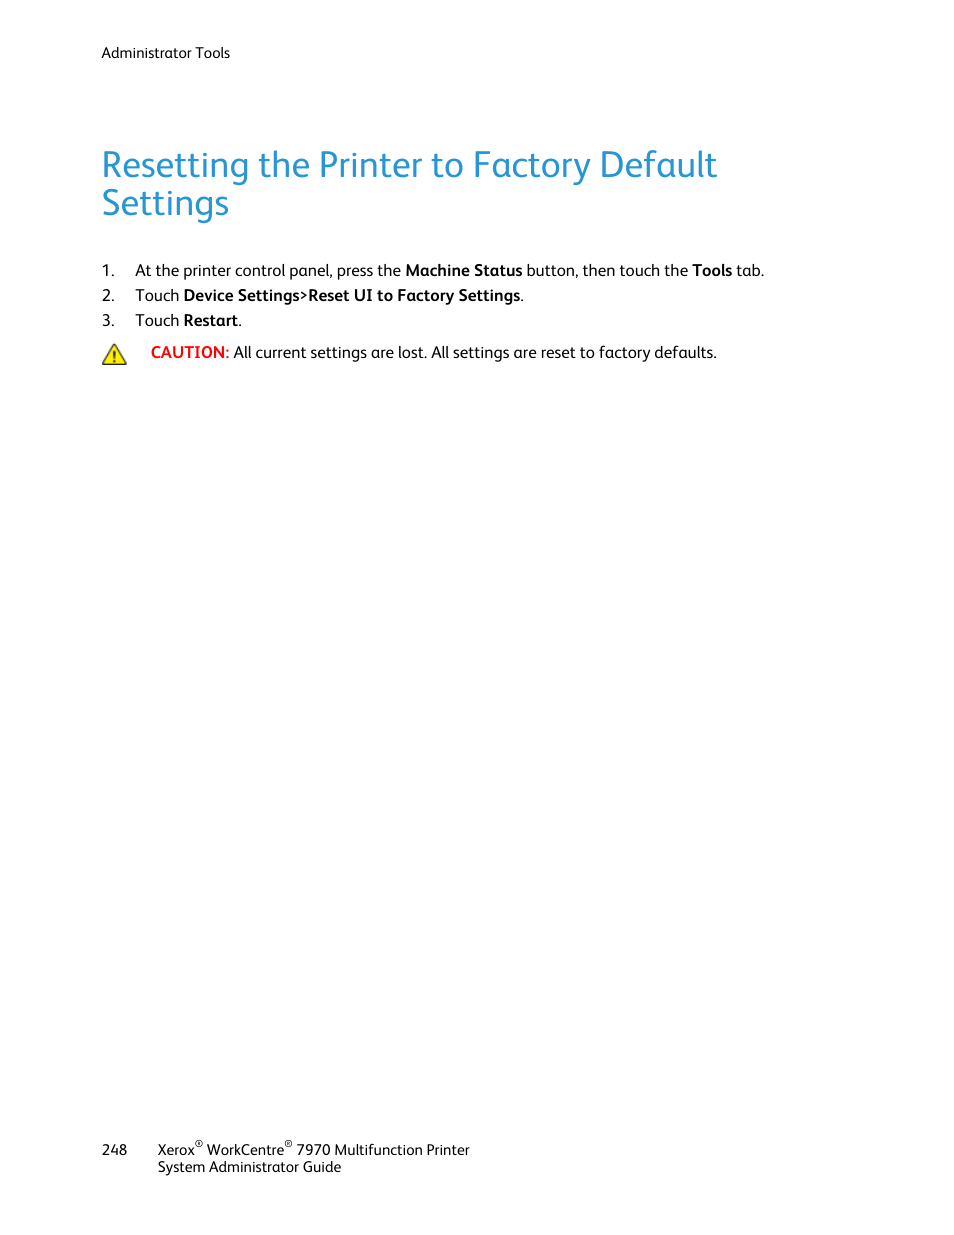 Resetting the printer to factory default settings | Xerox